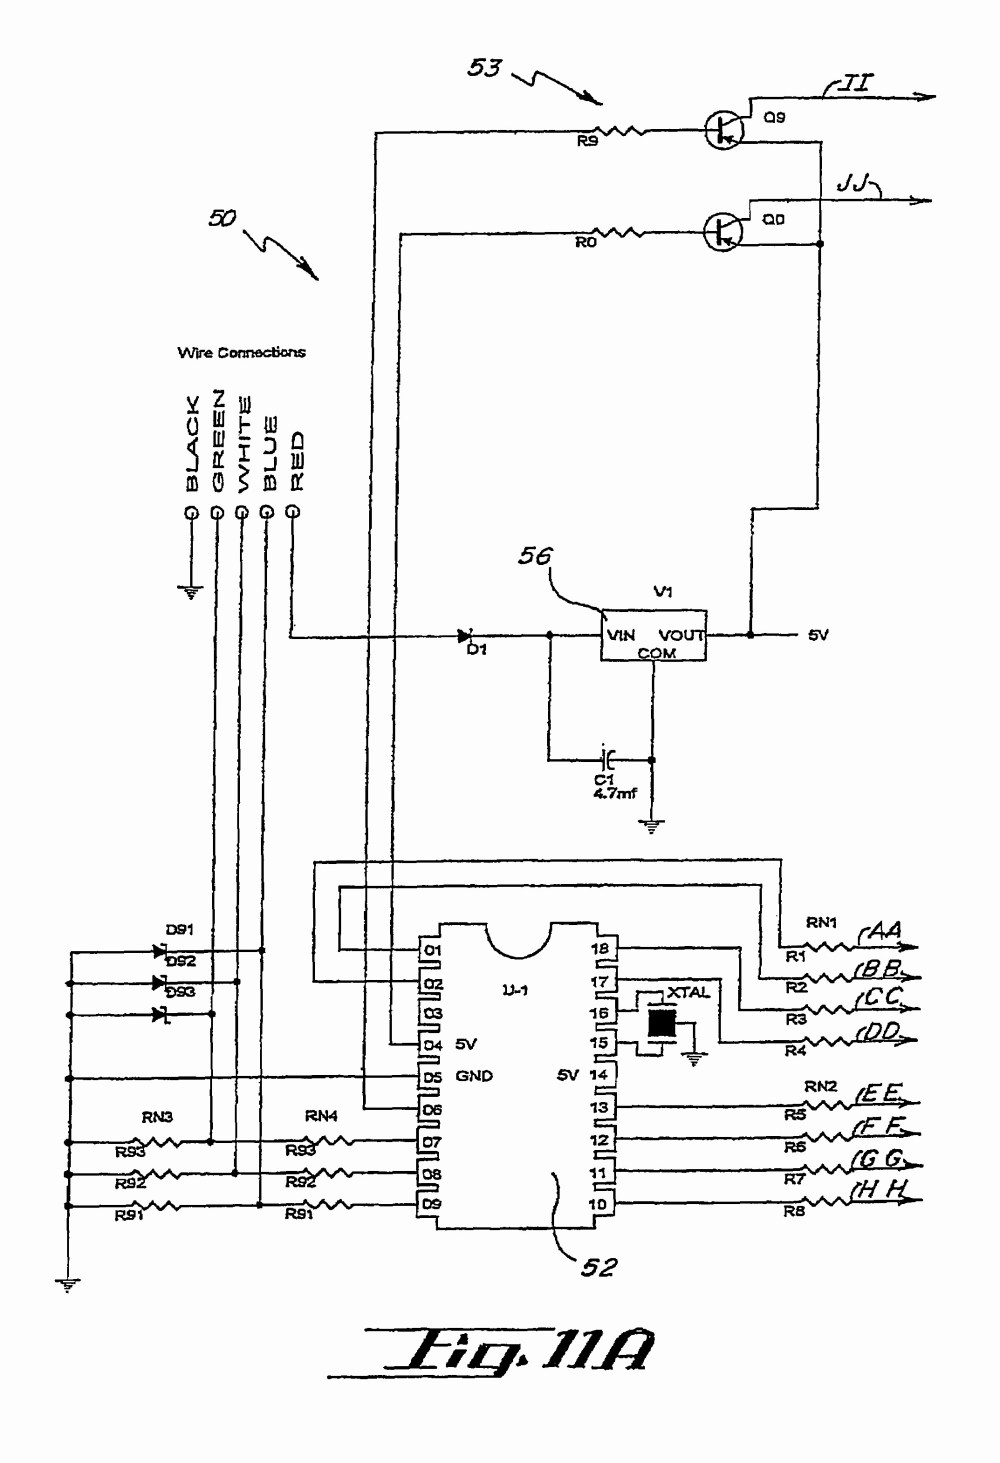 medium resolution of tir3 wiring diagram schema wiring diagramwhelen tir3 led wiring diagram wiring diagram name tir3 wiring diagram